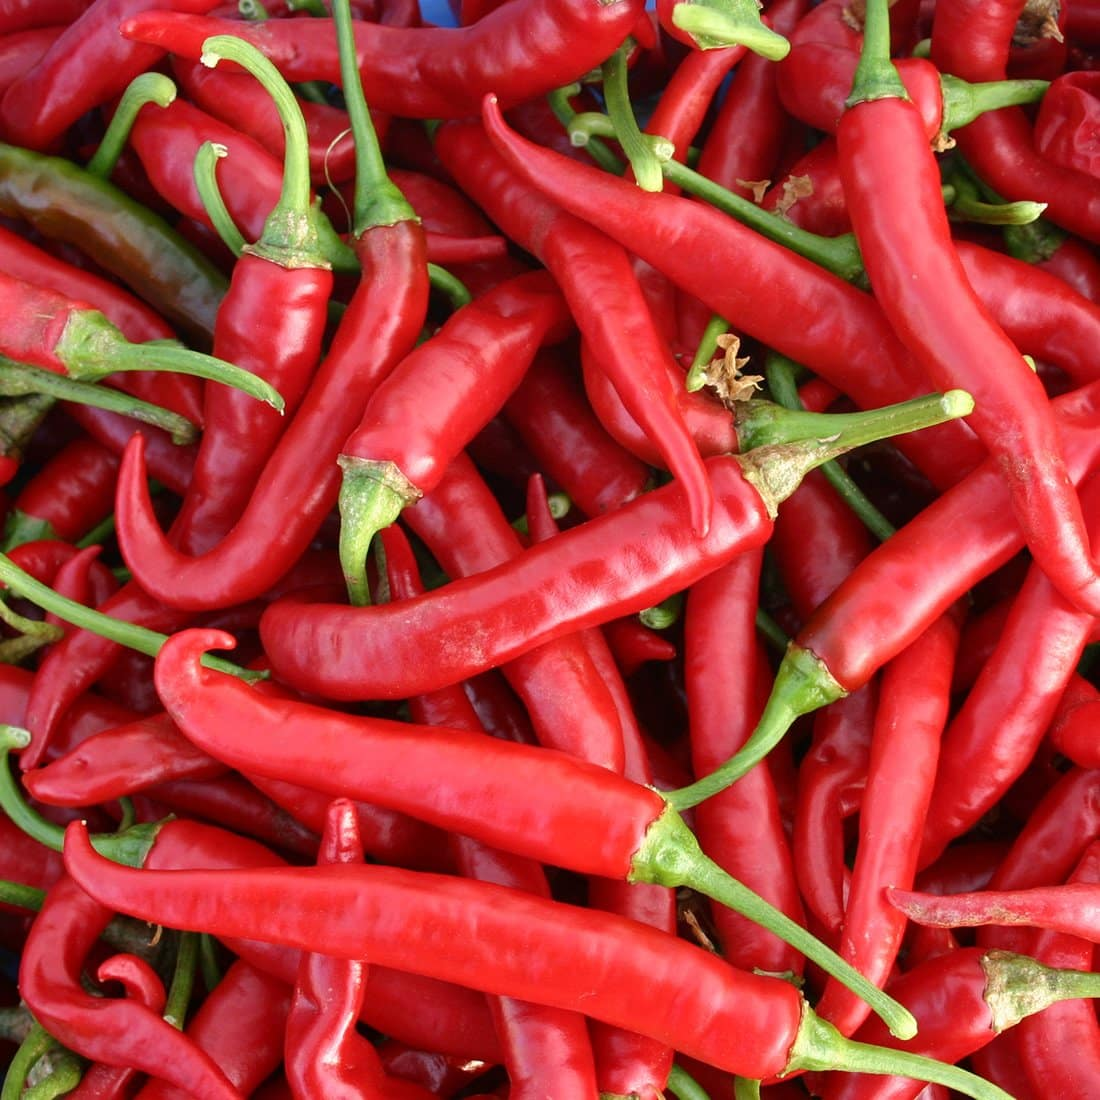 Police hunt mystery biker who 'randomly' tossed chilies into Mercedes